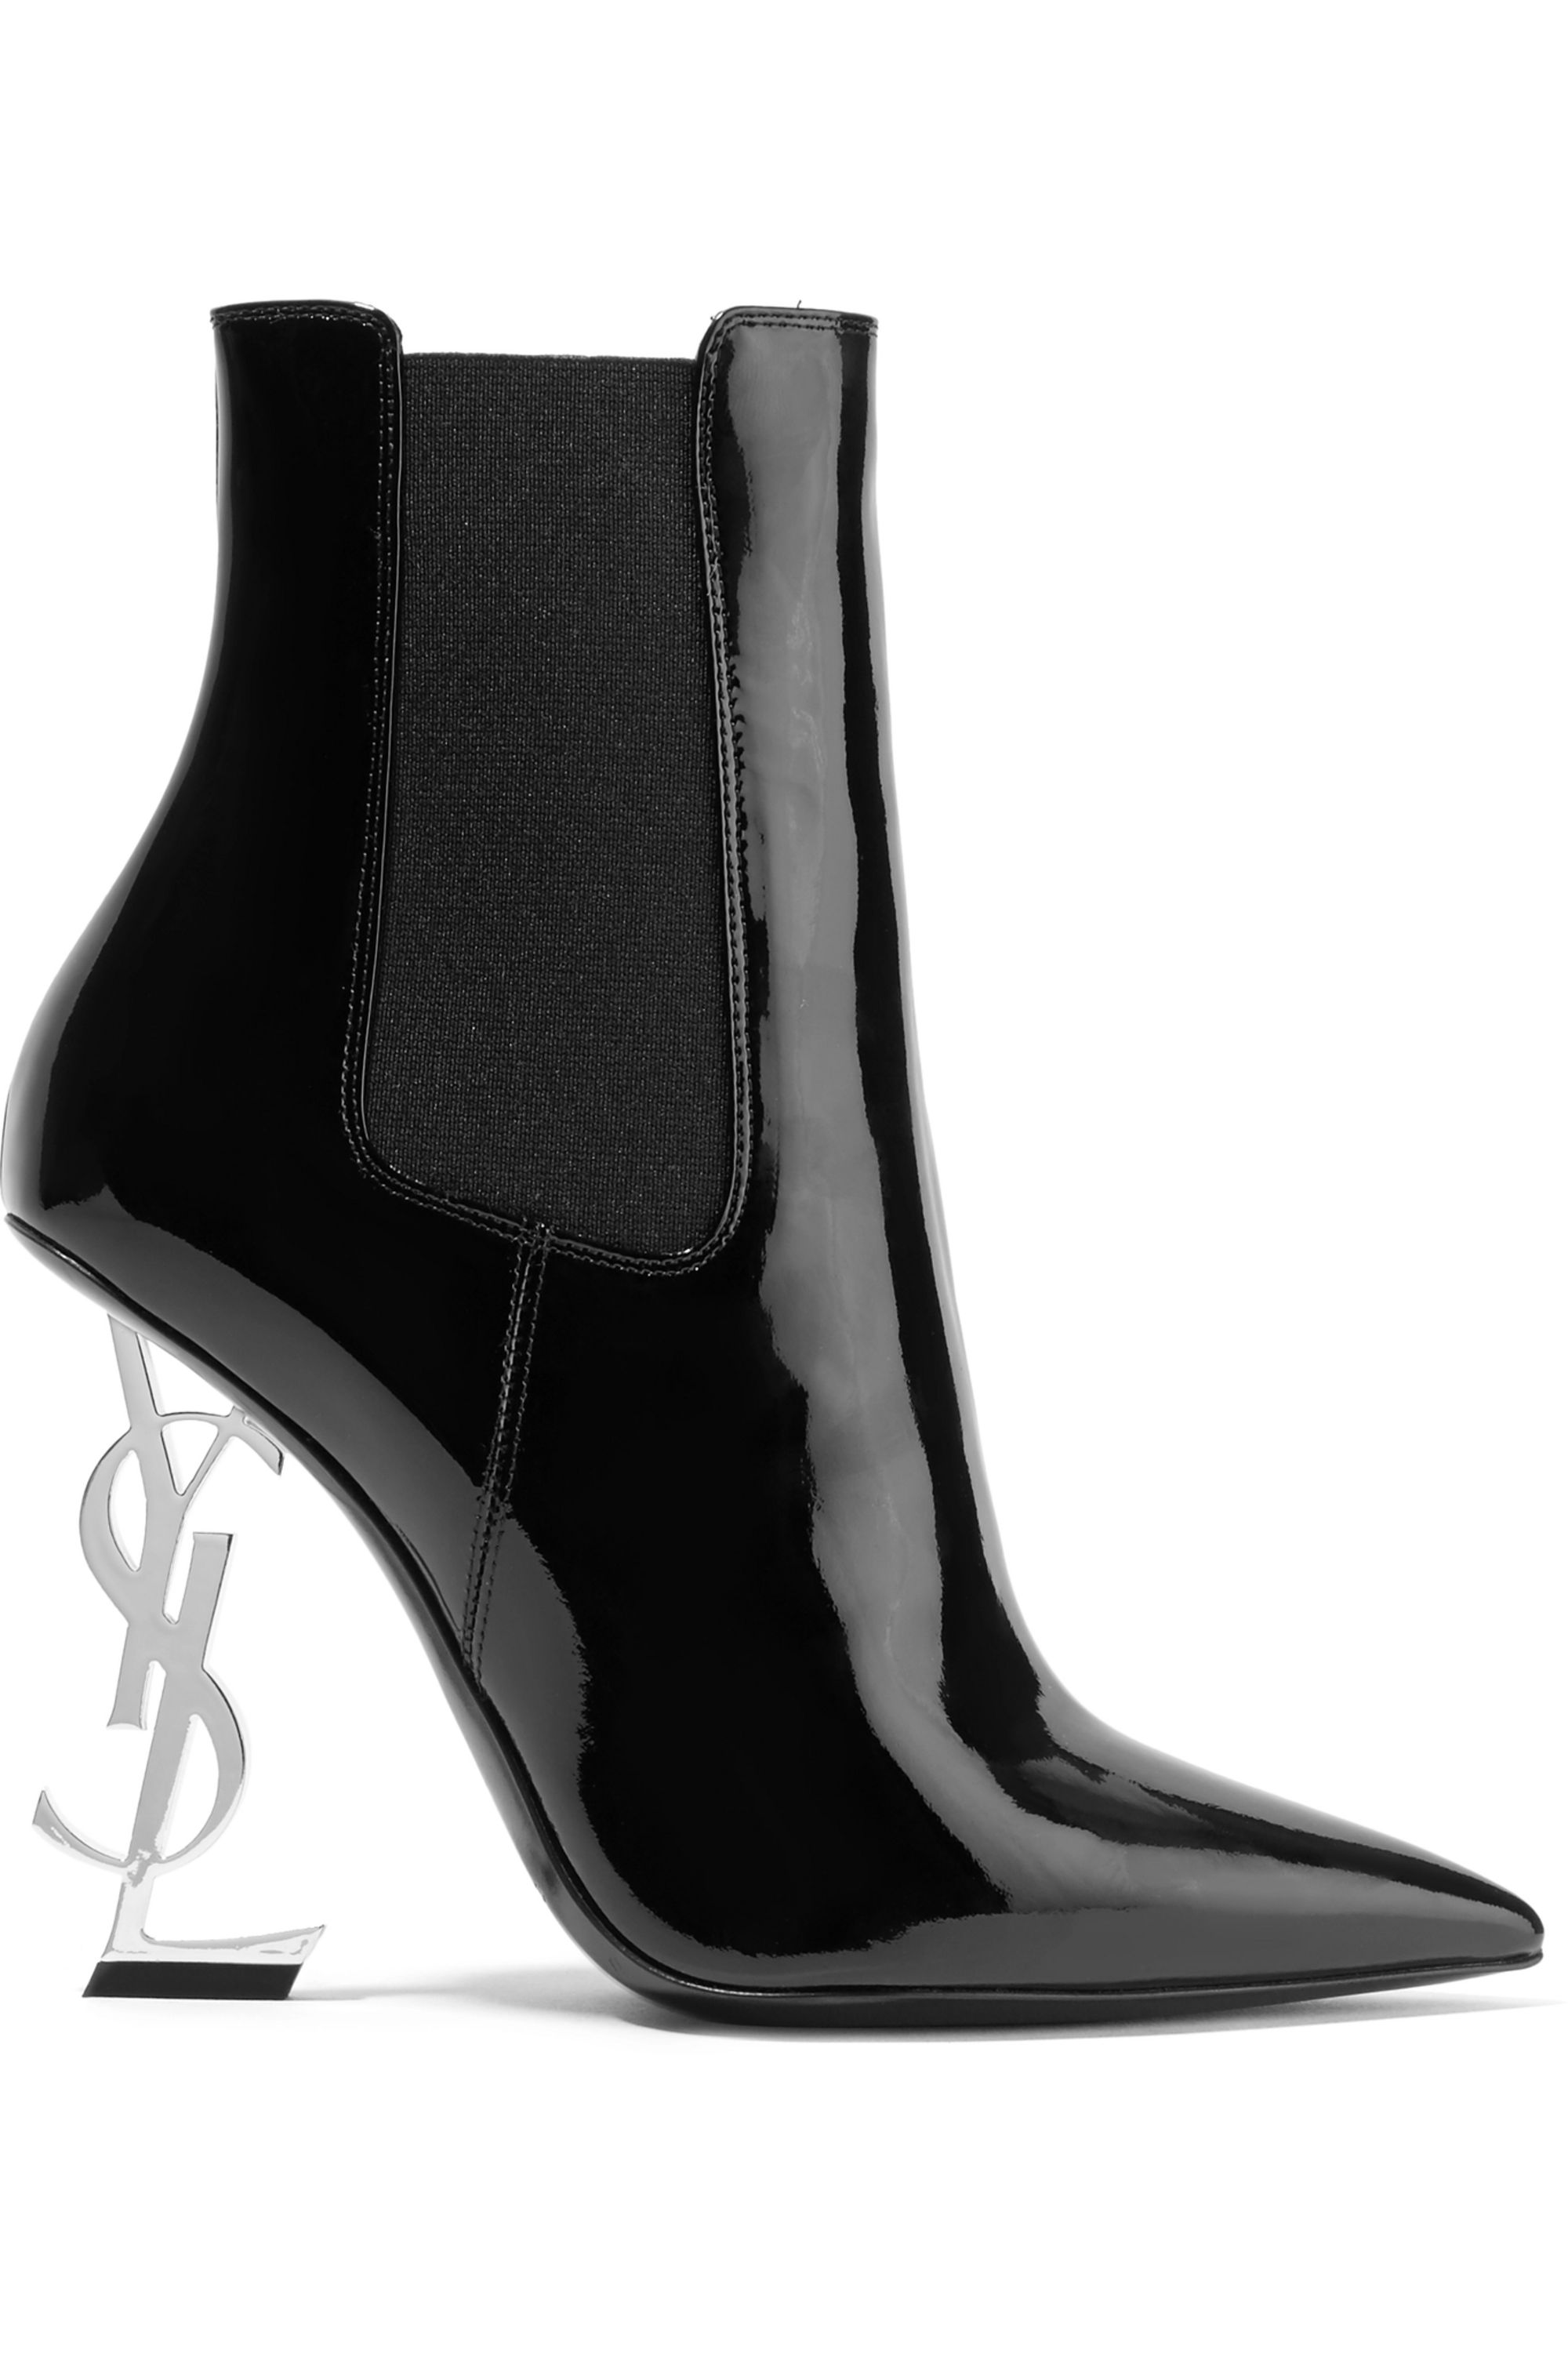 Black Opyum patent-leather ankle boots